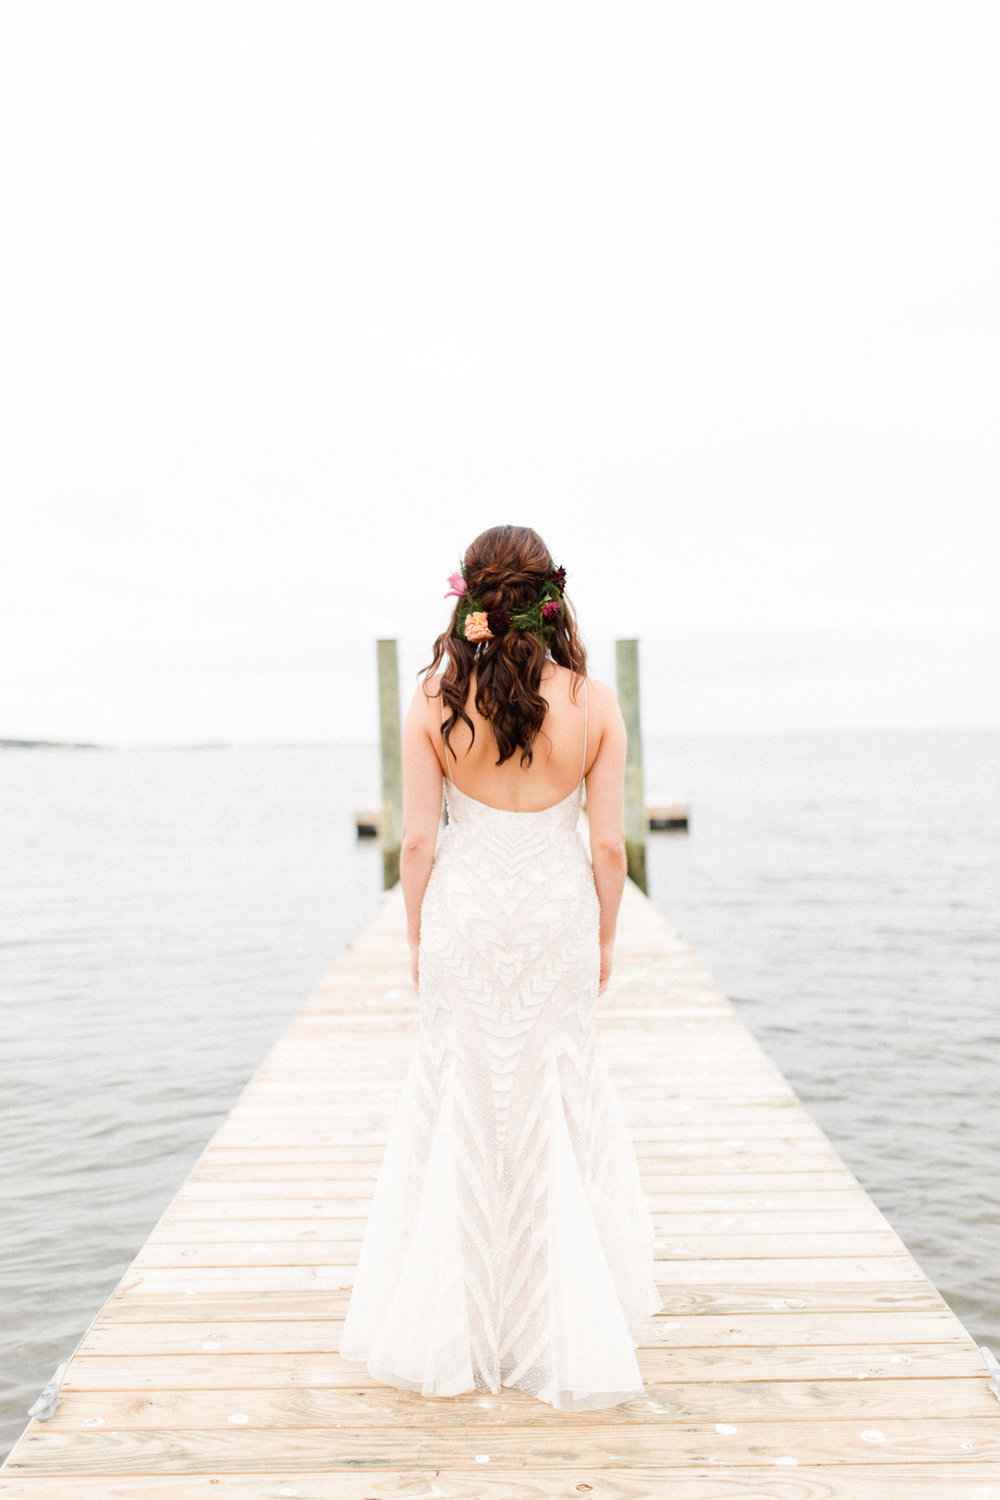 New England Wedding Photographer_Meg Haley Photographs_007.jpg